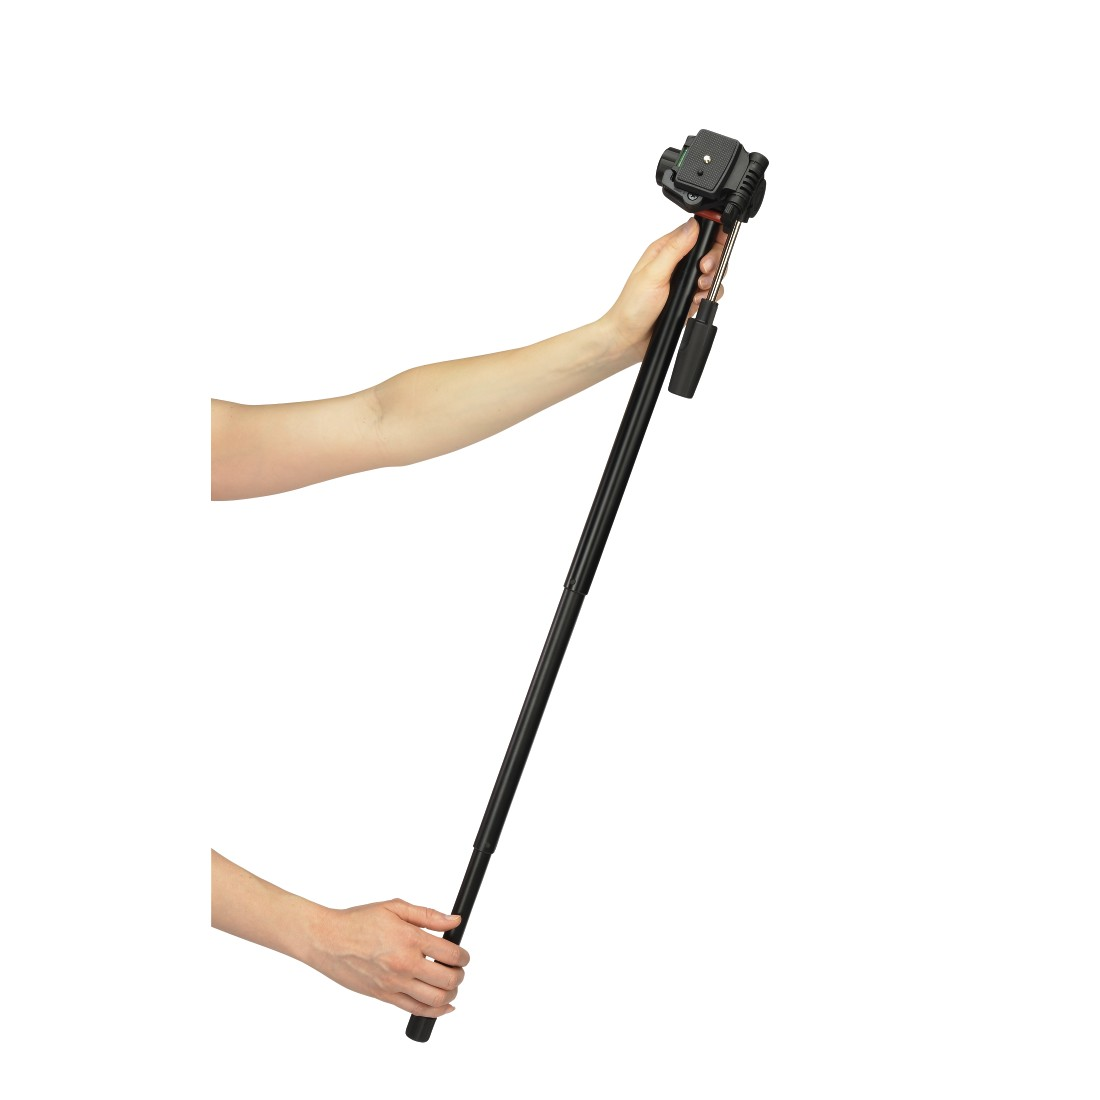 "awx3 High-Res Appliance 3 - Hama, ""Profil Duo"" Tripod, 150 - 3D"